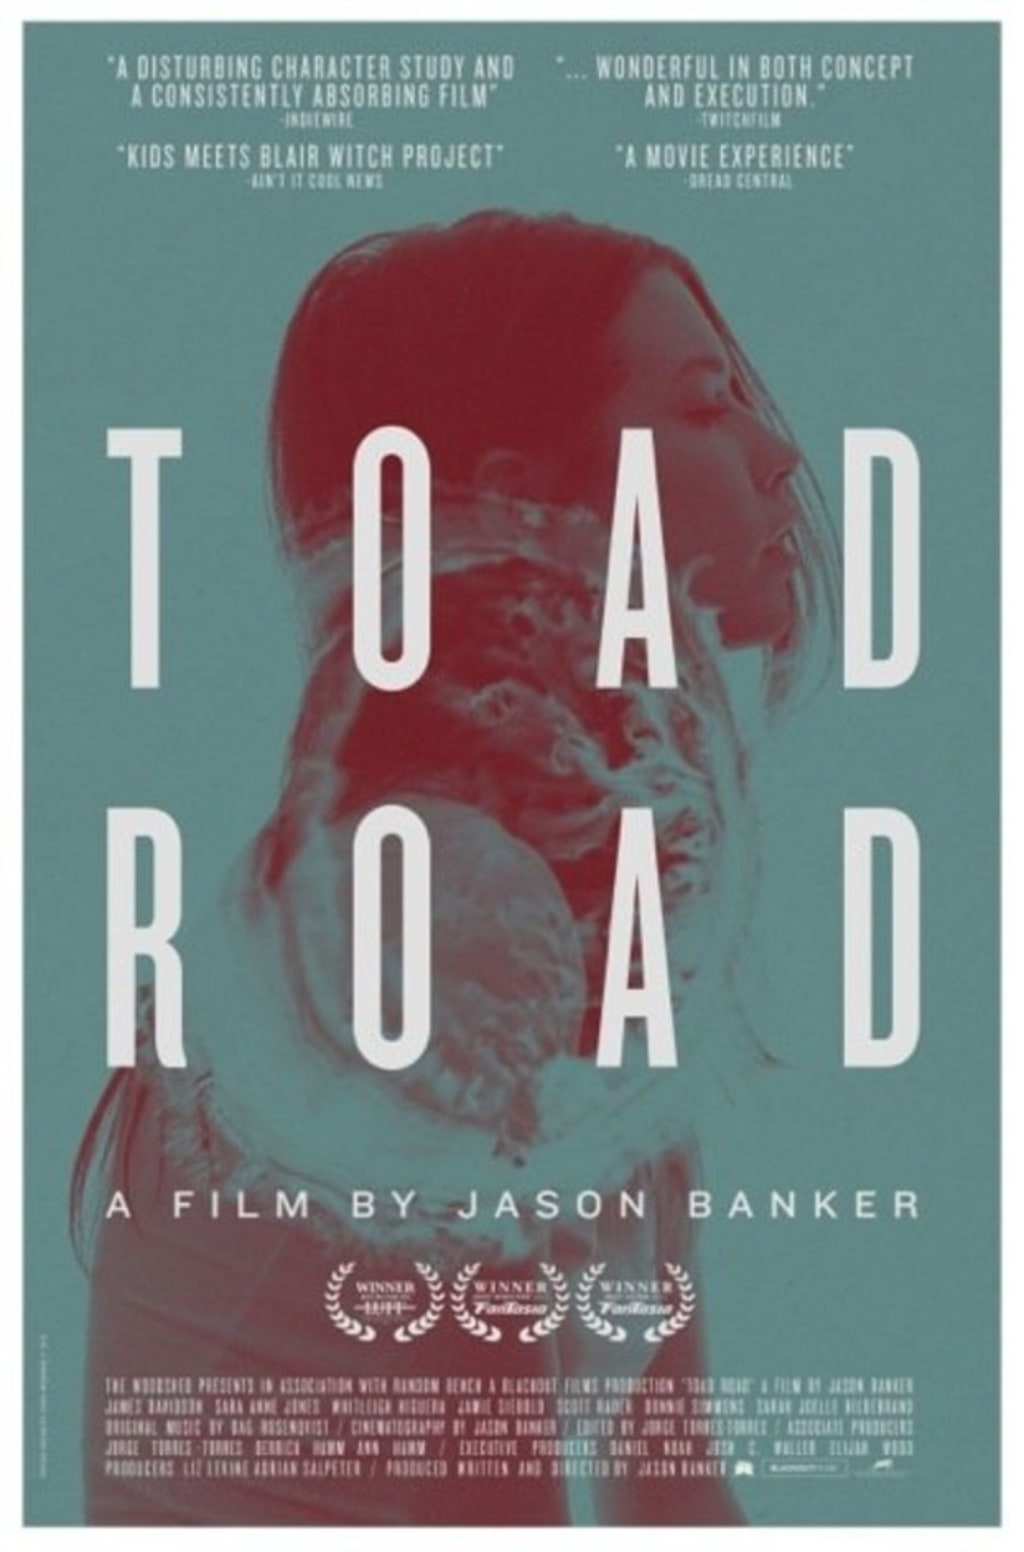 Reed Alexander's Horror Review of 'Toad Road' (2012)